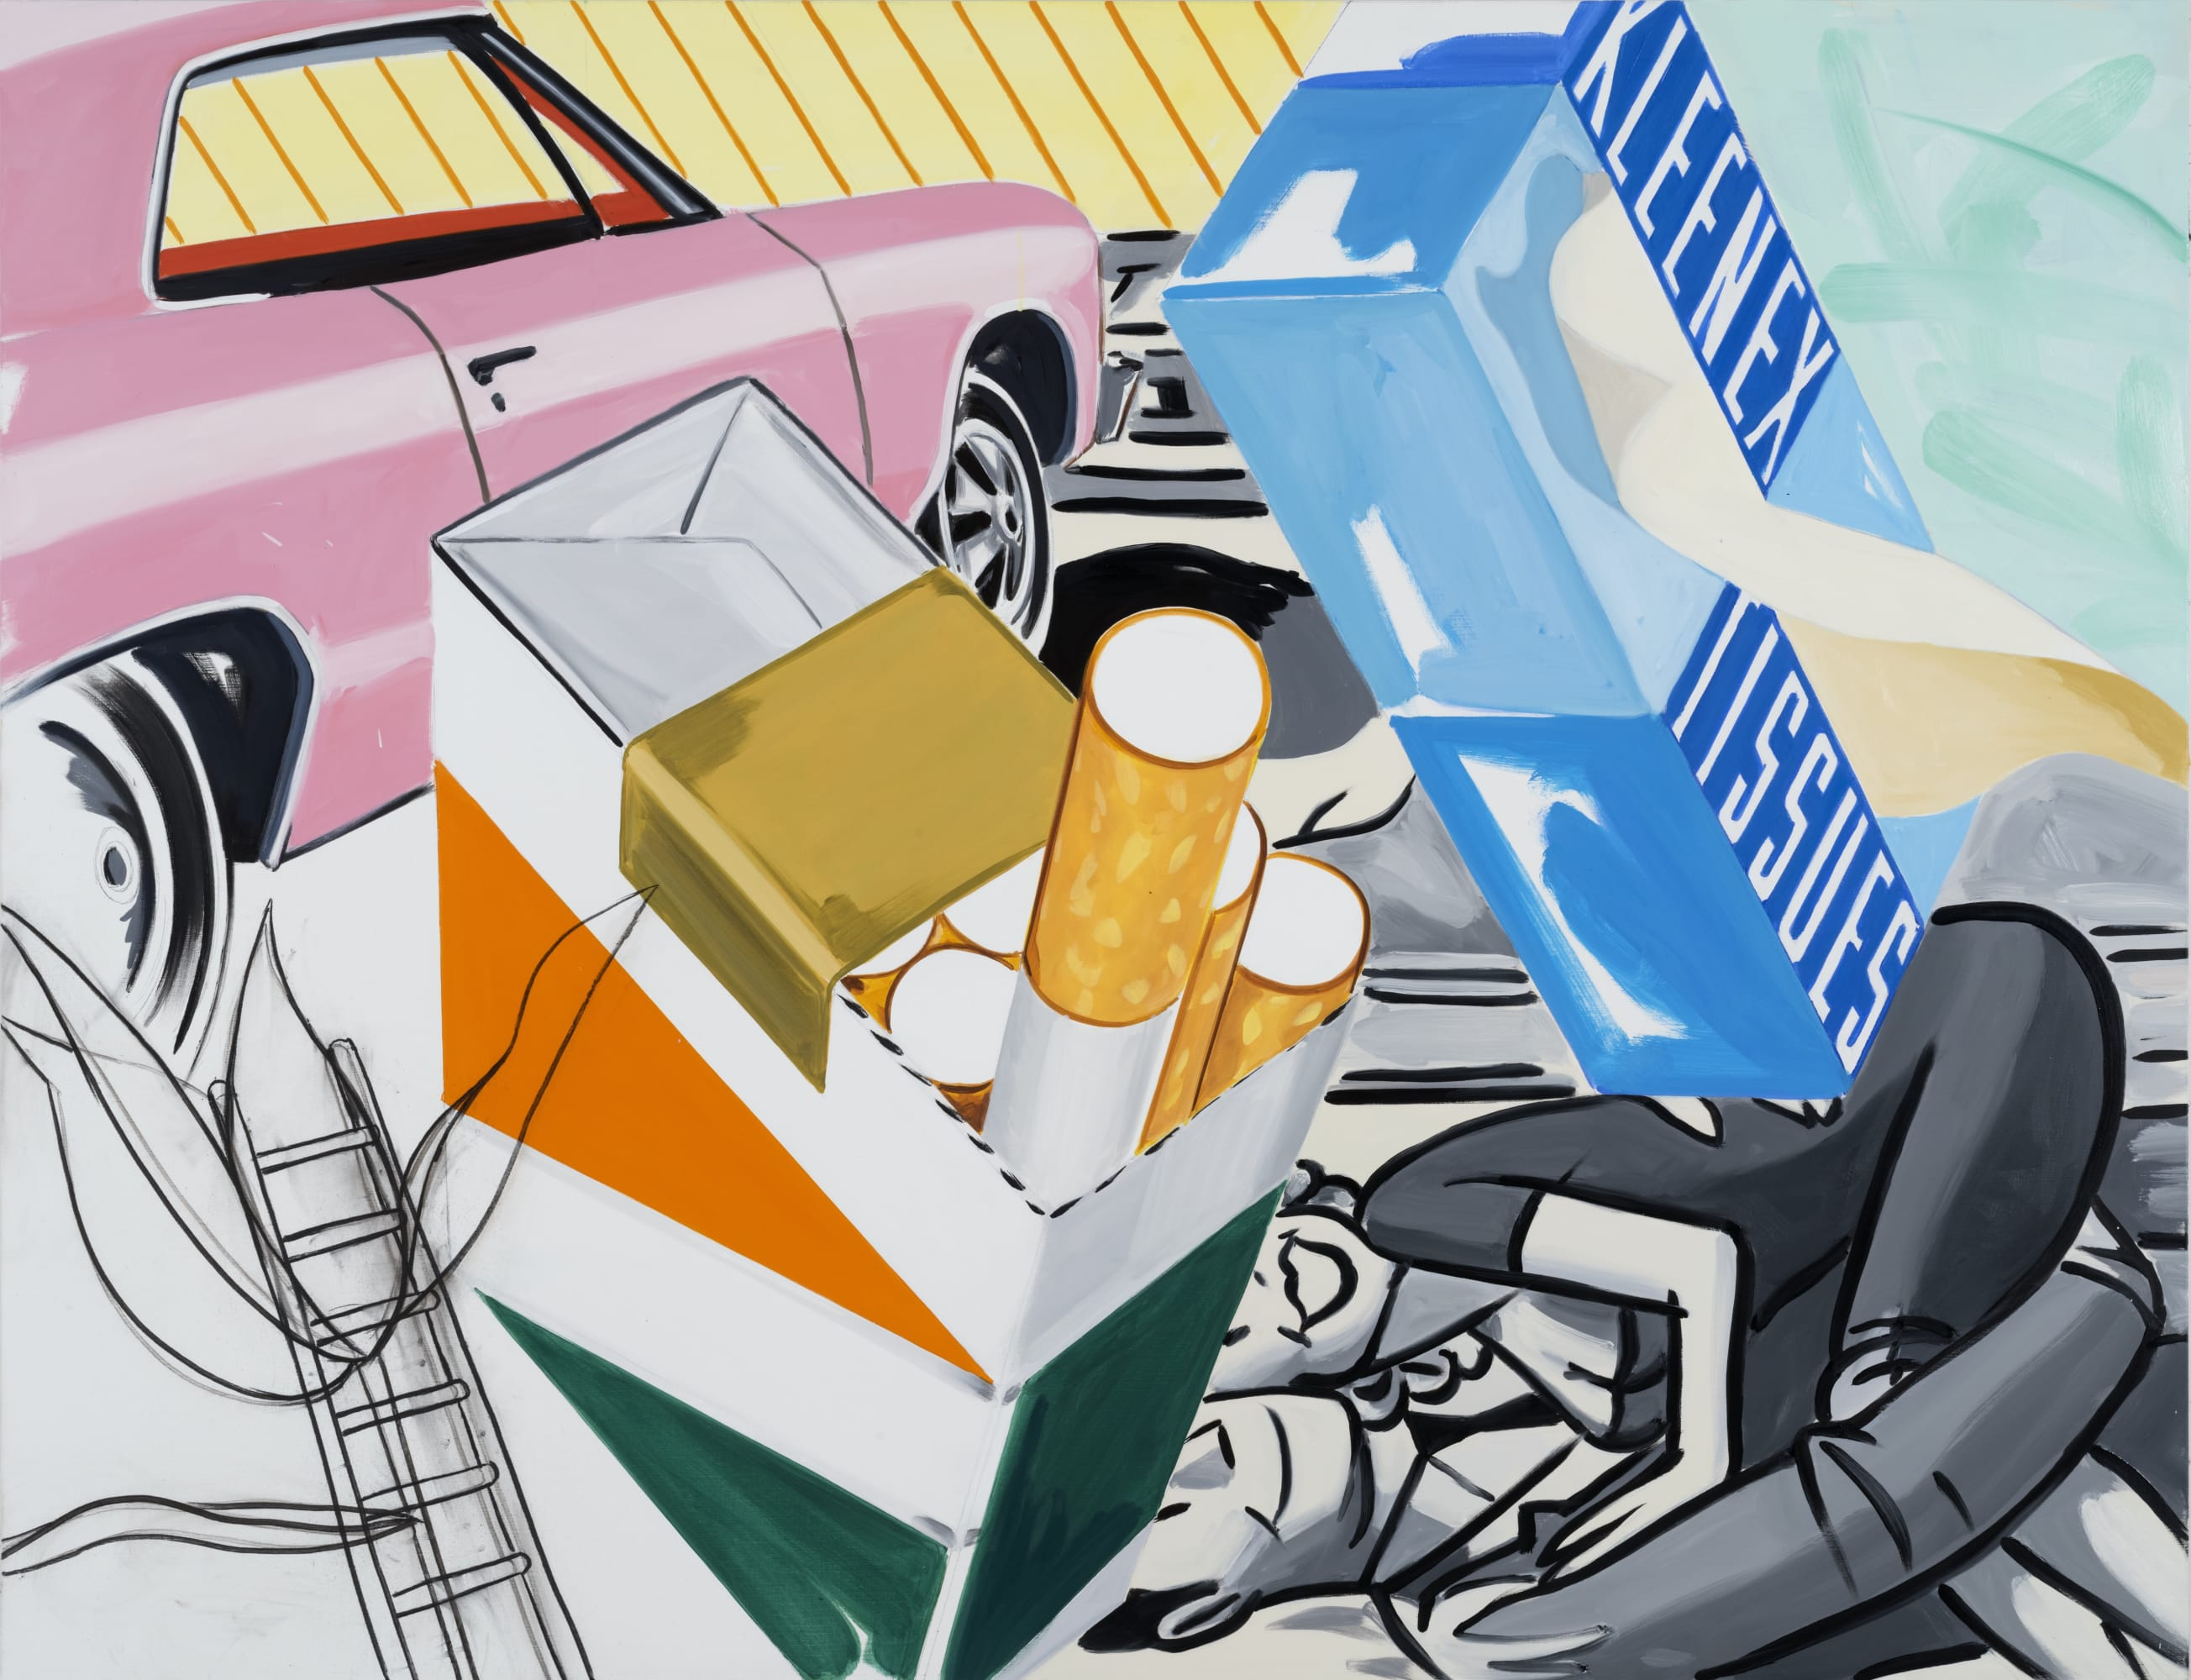 David Salle, Shining in All Directions (2019); Self-Ironing Pants & Other Paintings at Thaddaeus Ropac Paris Marais 2020